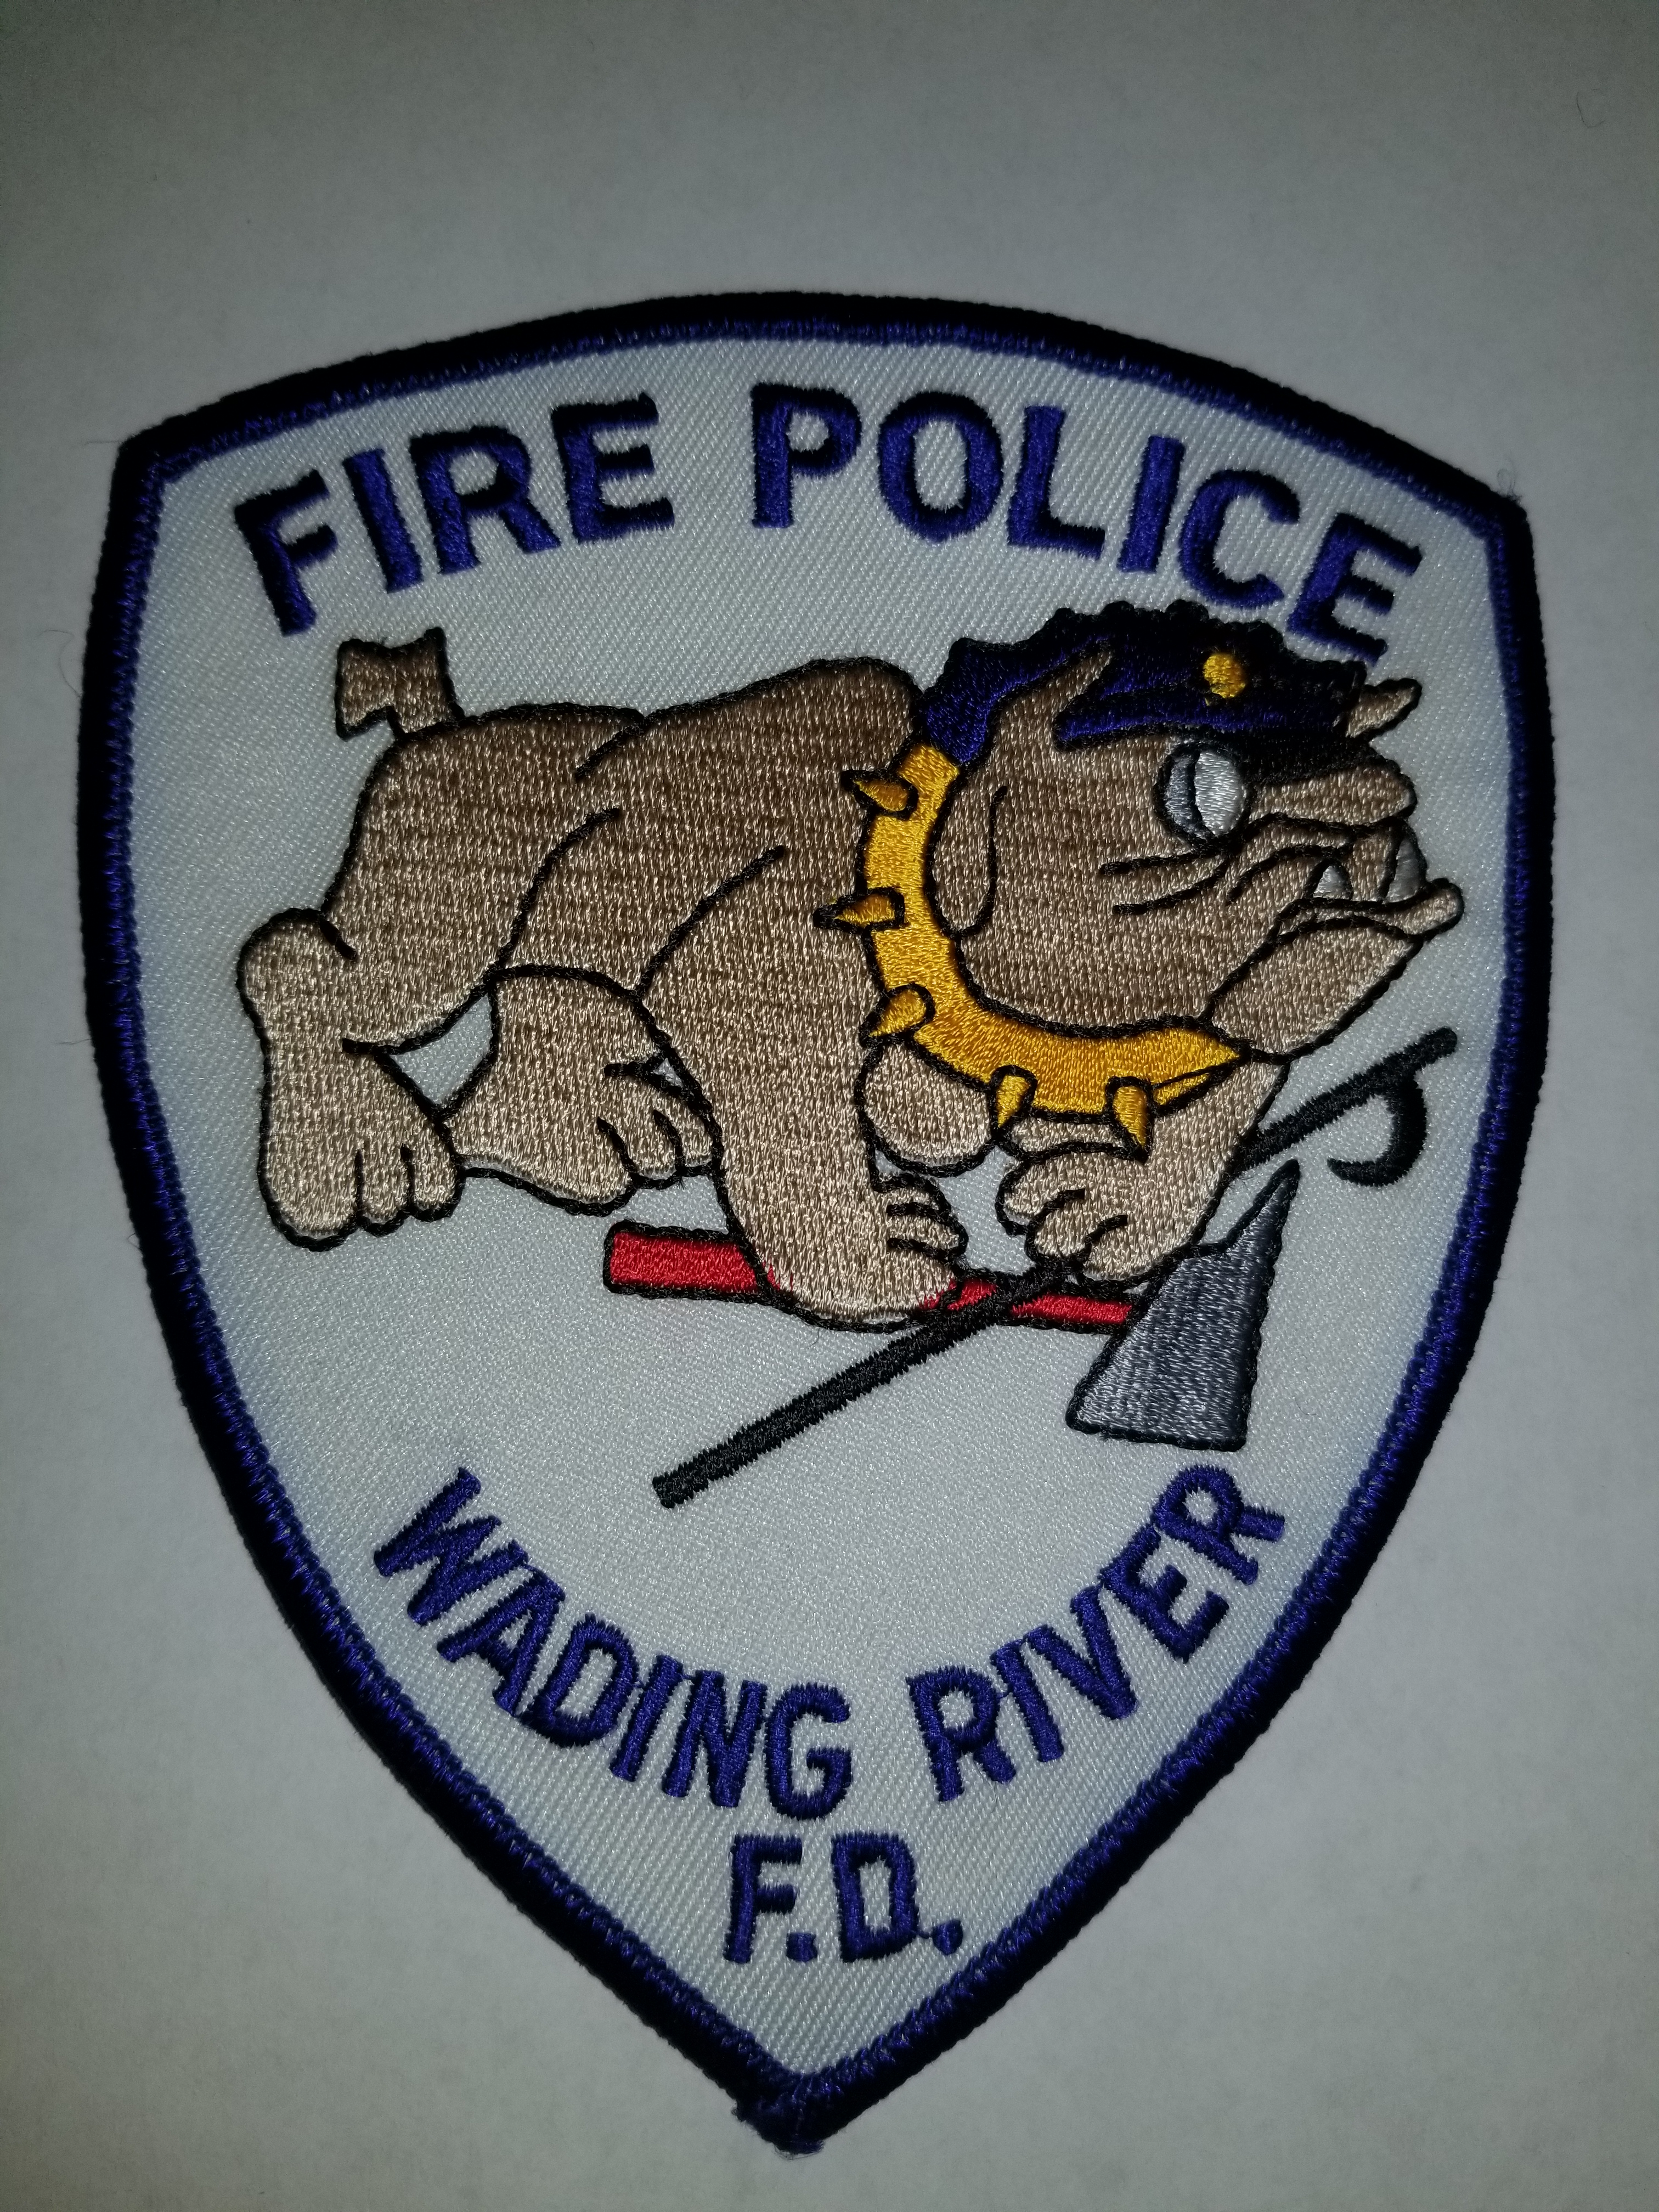 Wading River Fire Department NY Fire Police